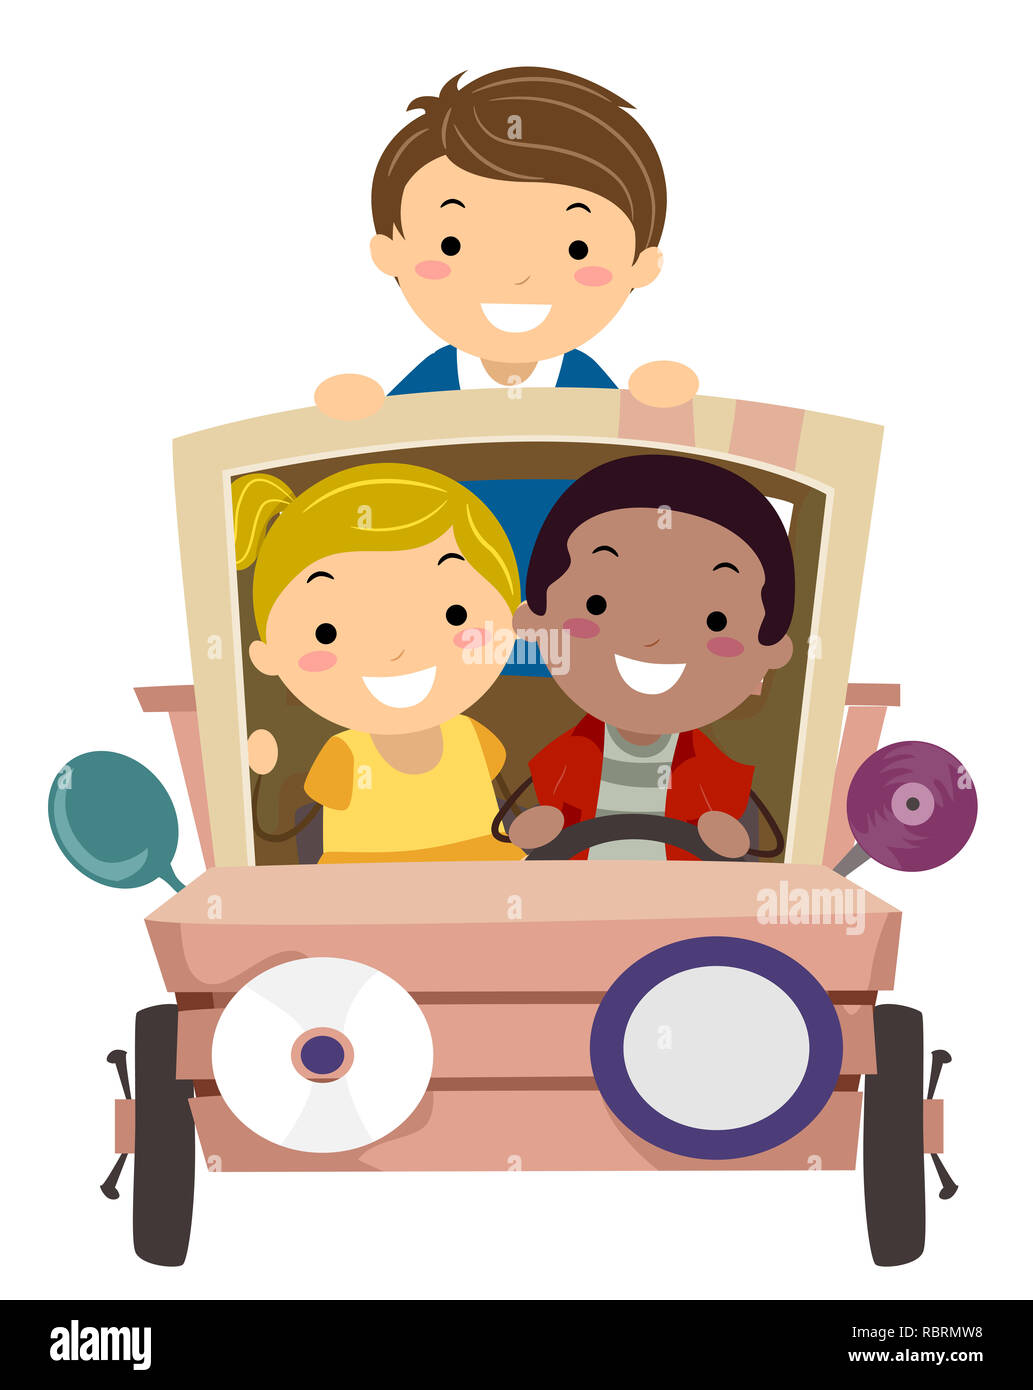 Illustration of Stickman Kids Riding a Car Recycled from Junk - Stock Image